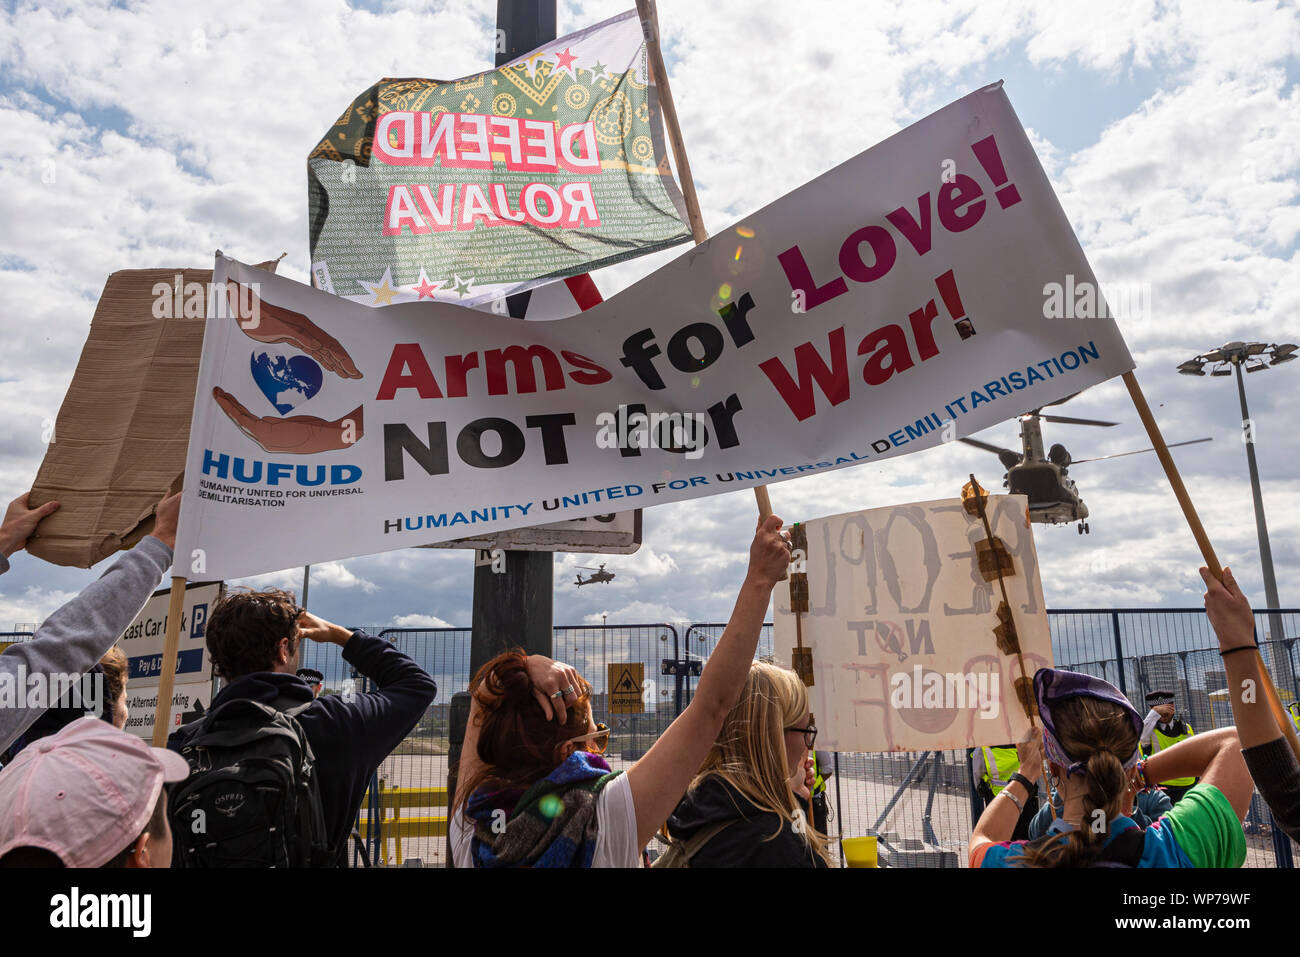 US Army Chinook helicopter landing at Defence & Security Equipment International DSEI arms fair trade show, ExCel, London, UK with protesters banner Stock Photo